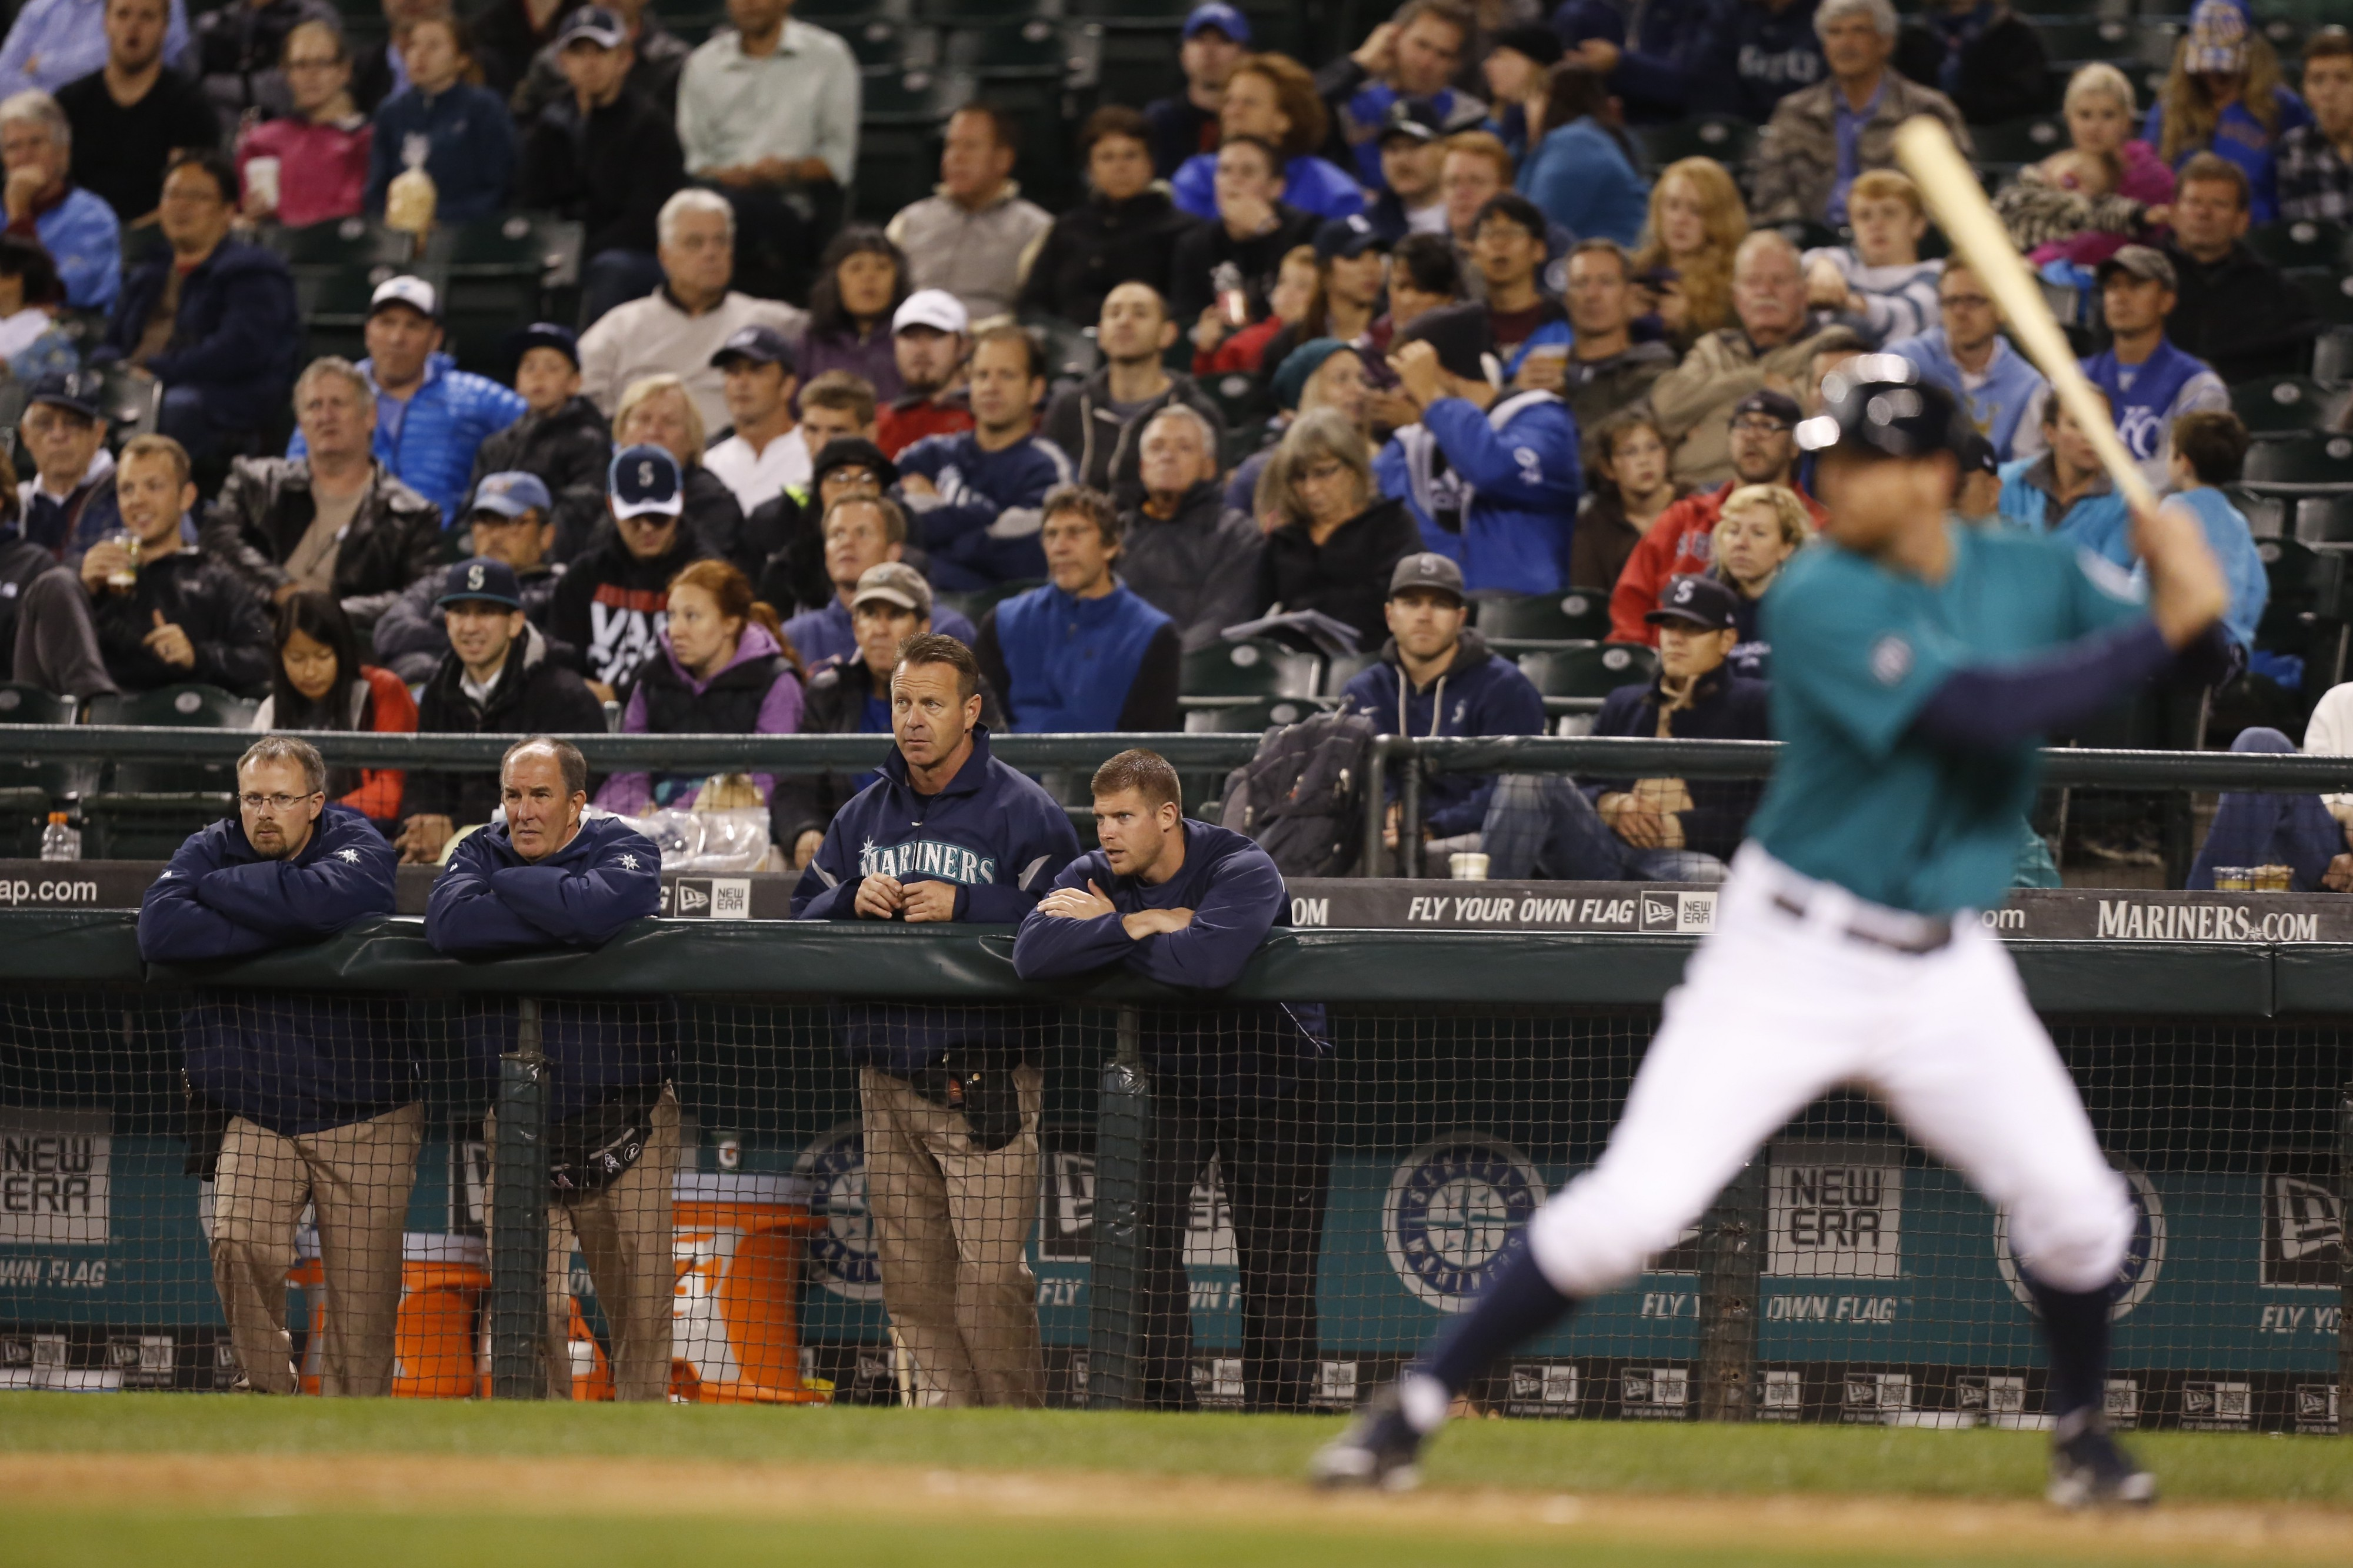 Mariners Medical Staff Named Best In Baseball - From the